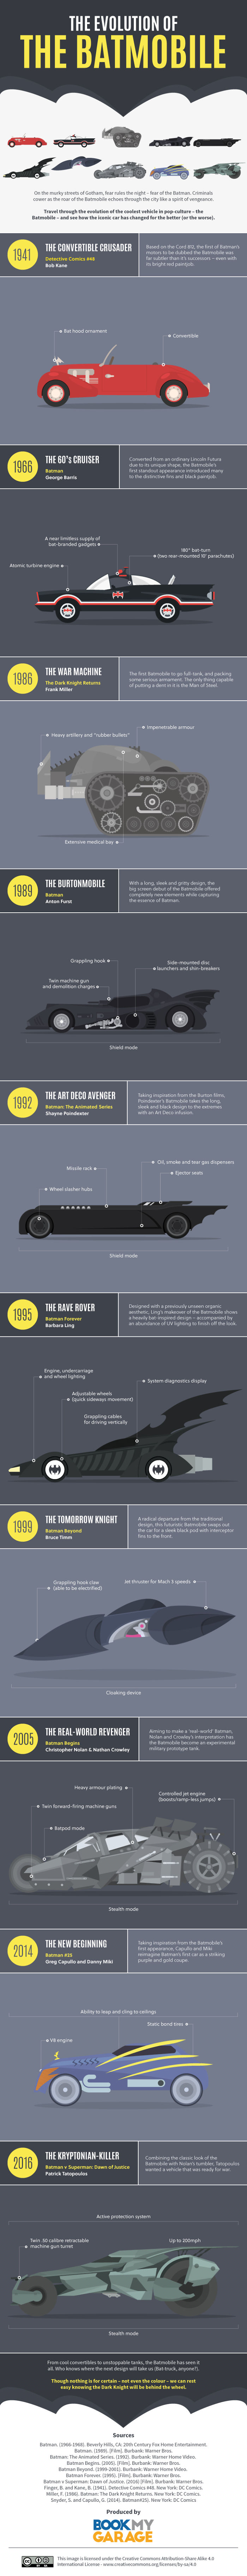 The Evolution Of The Batmobile (infographic)